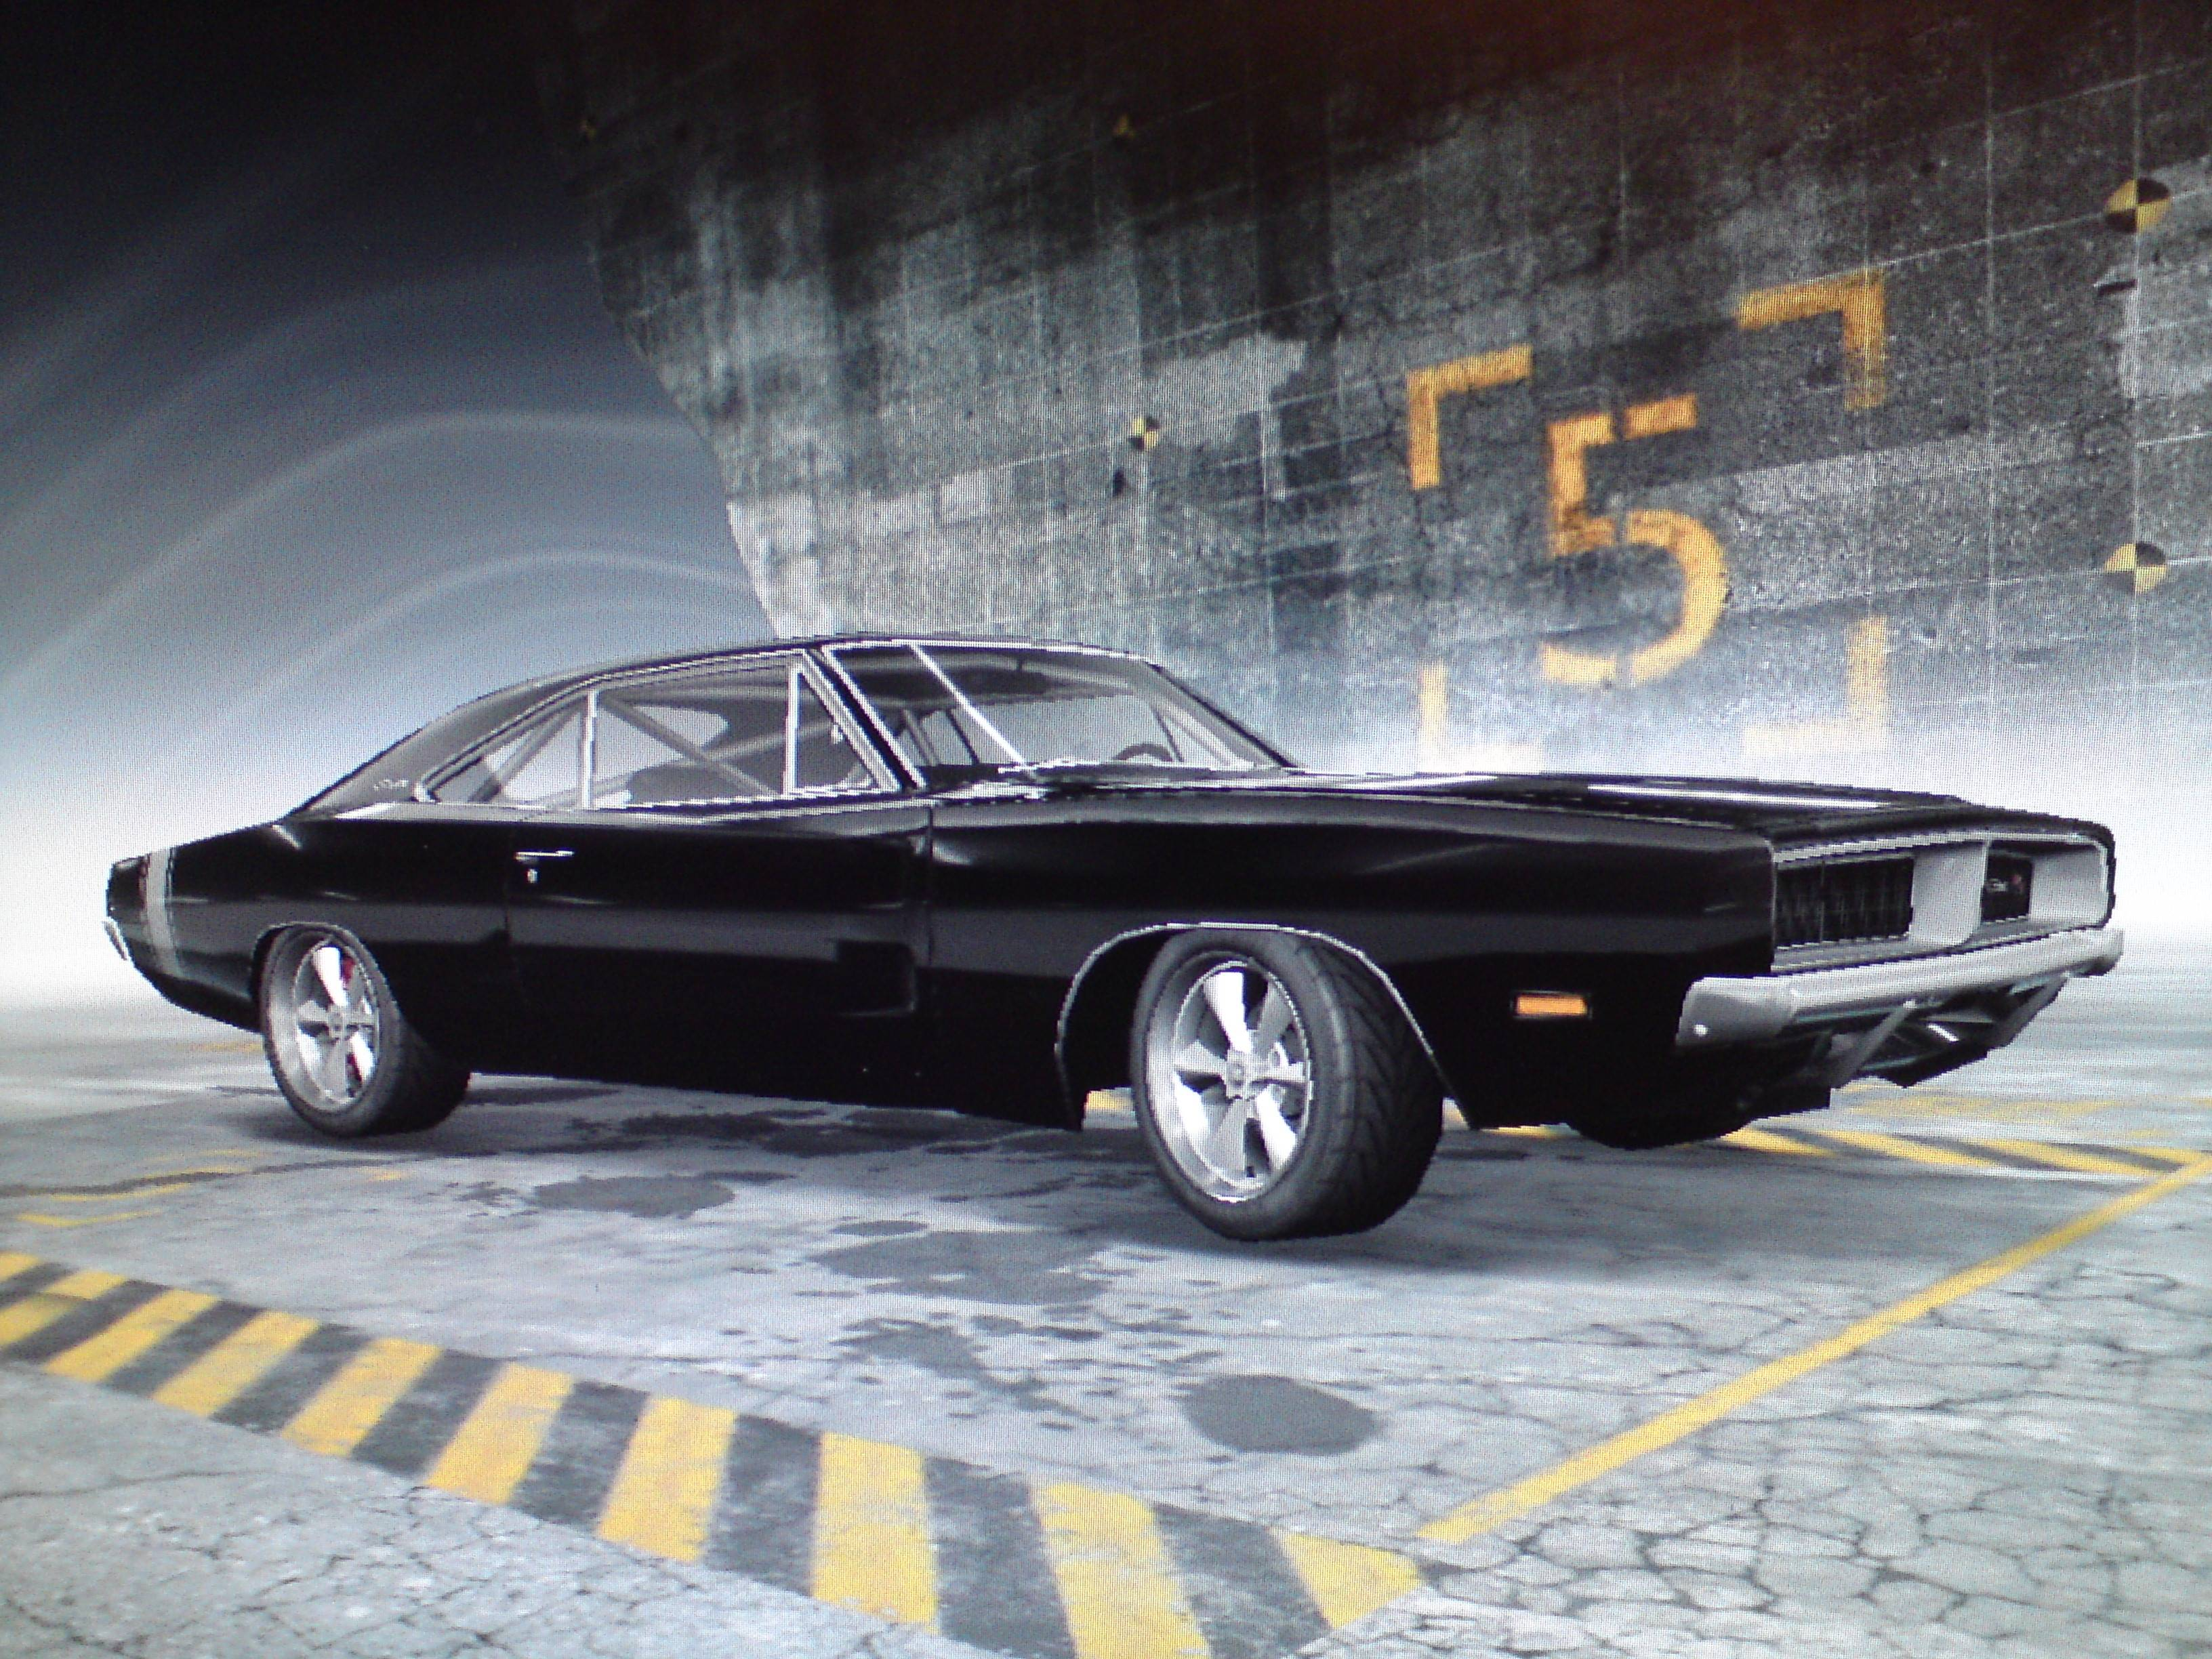 69 Dodge Charger Wallpapers 3264x2448